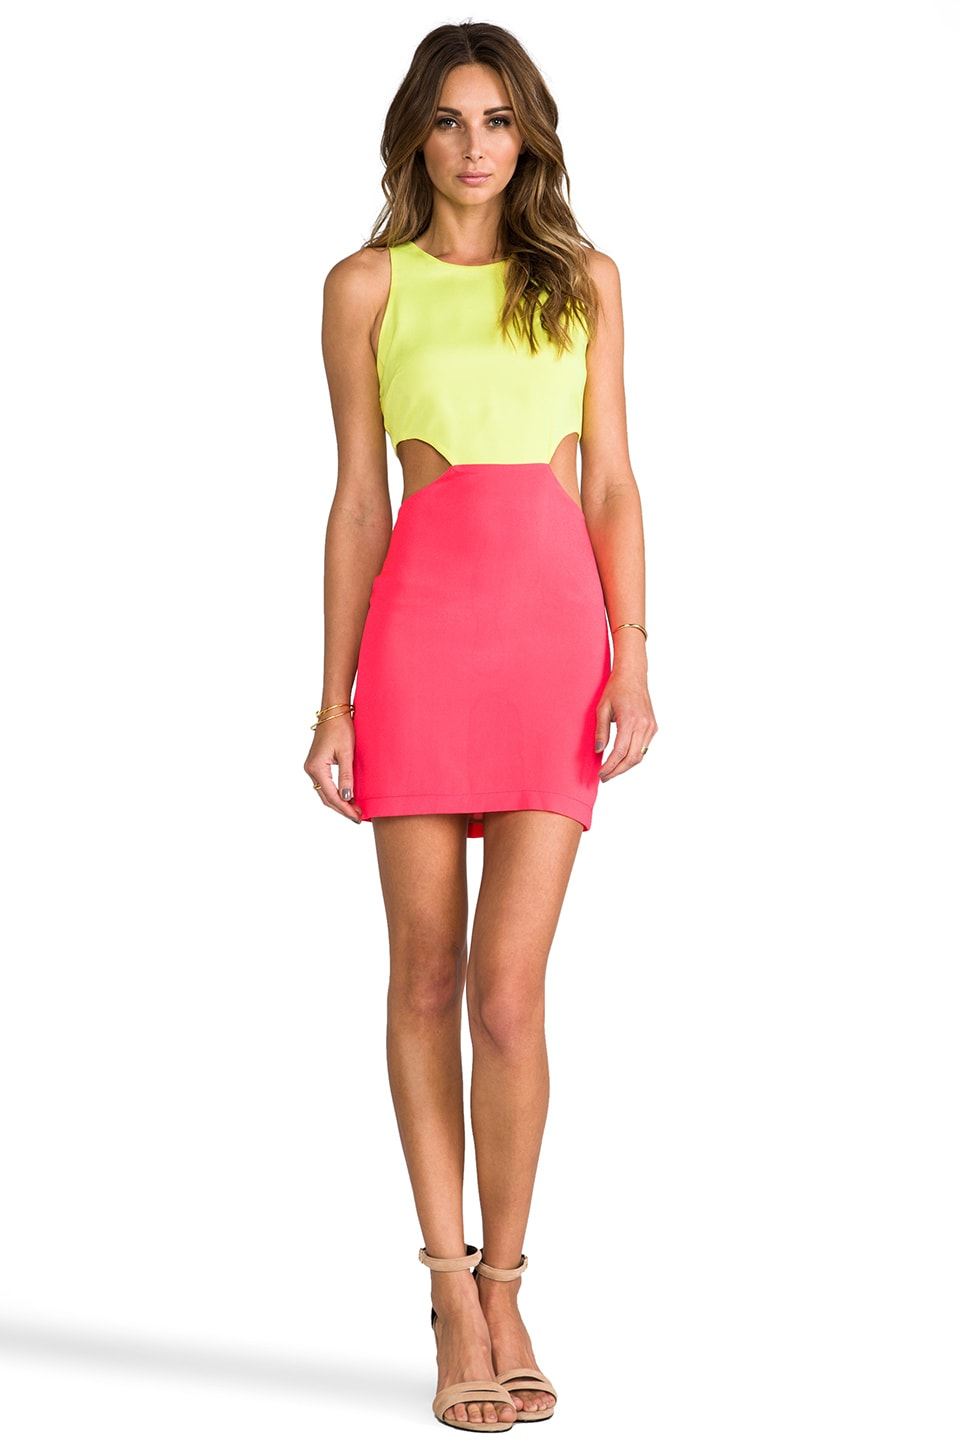 Naven 2 Tone Cutout Dress in Neon Yellow/Neon Salmon